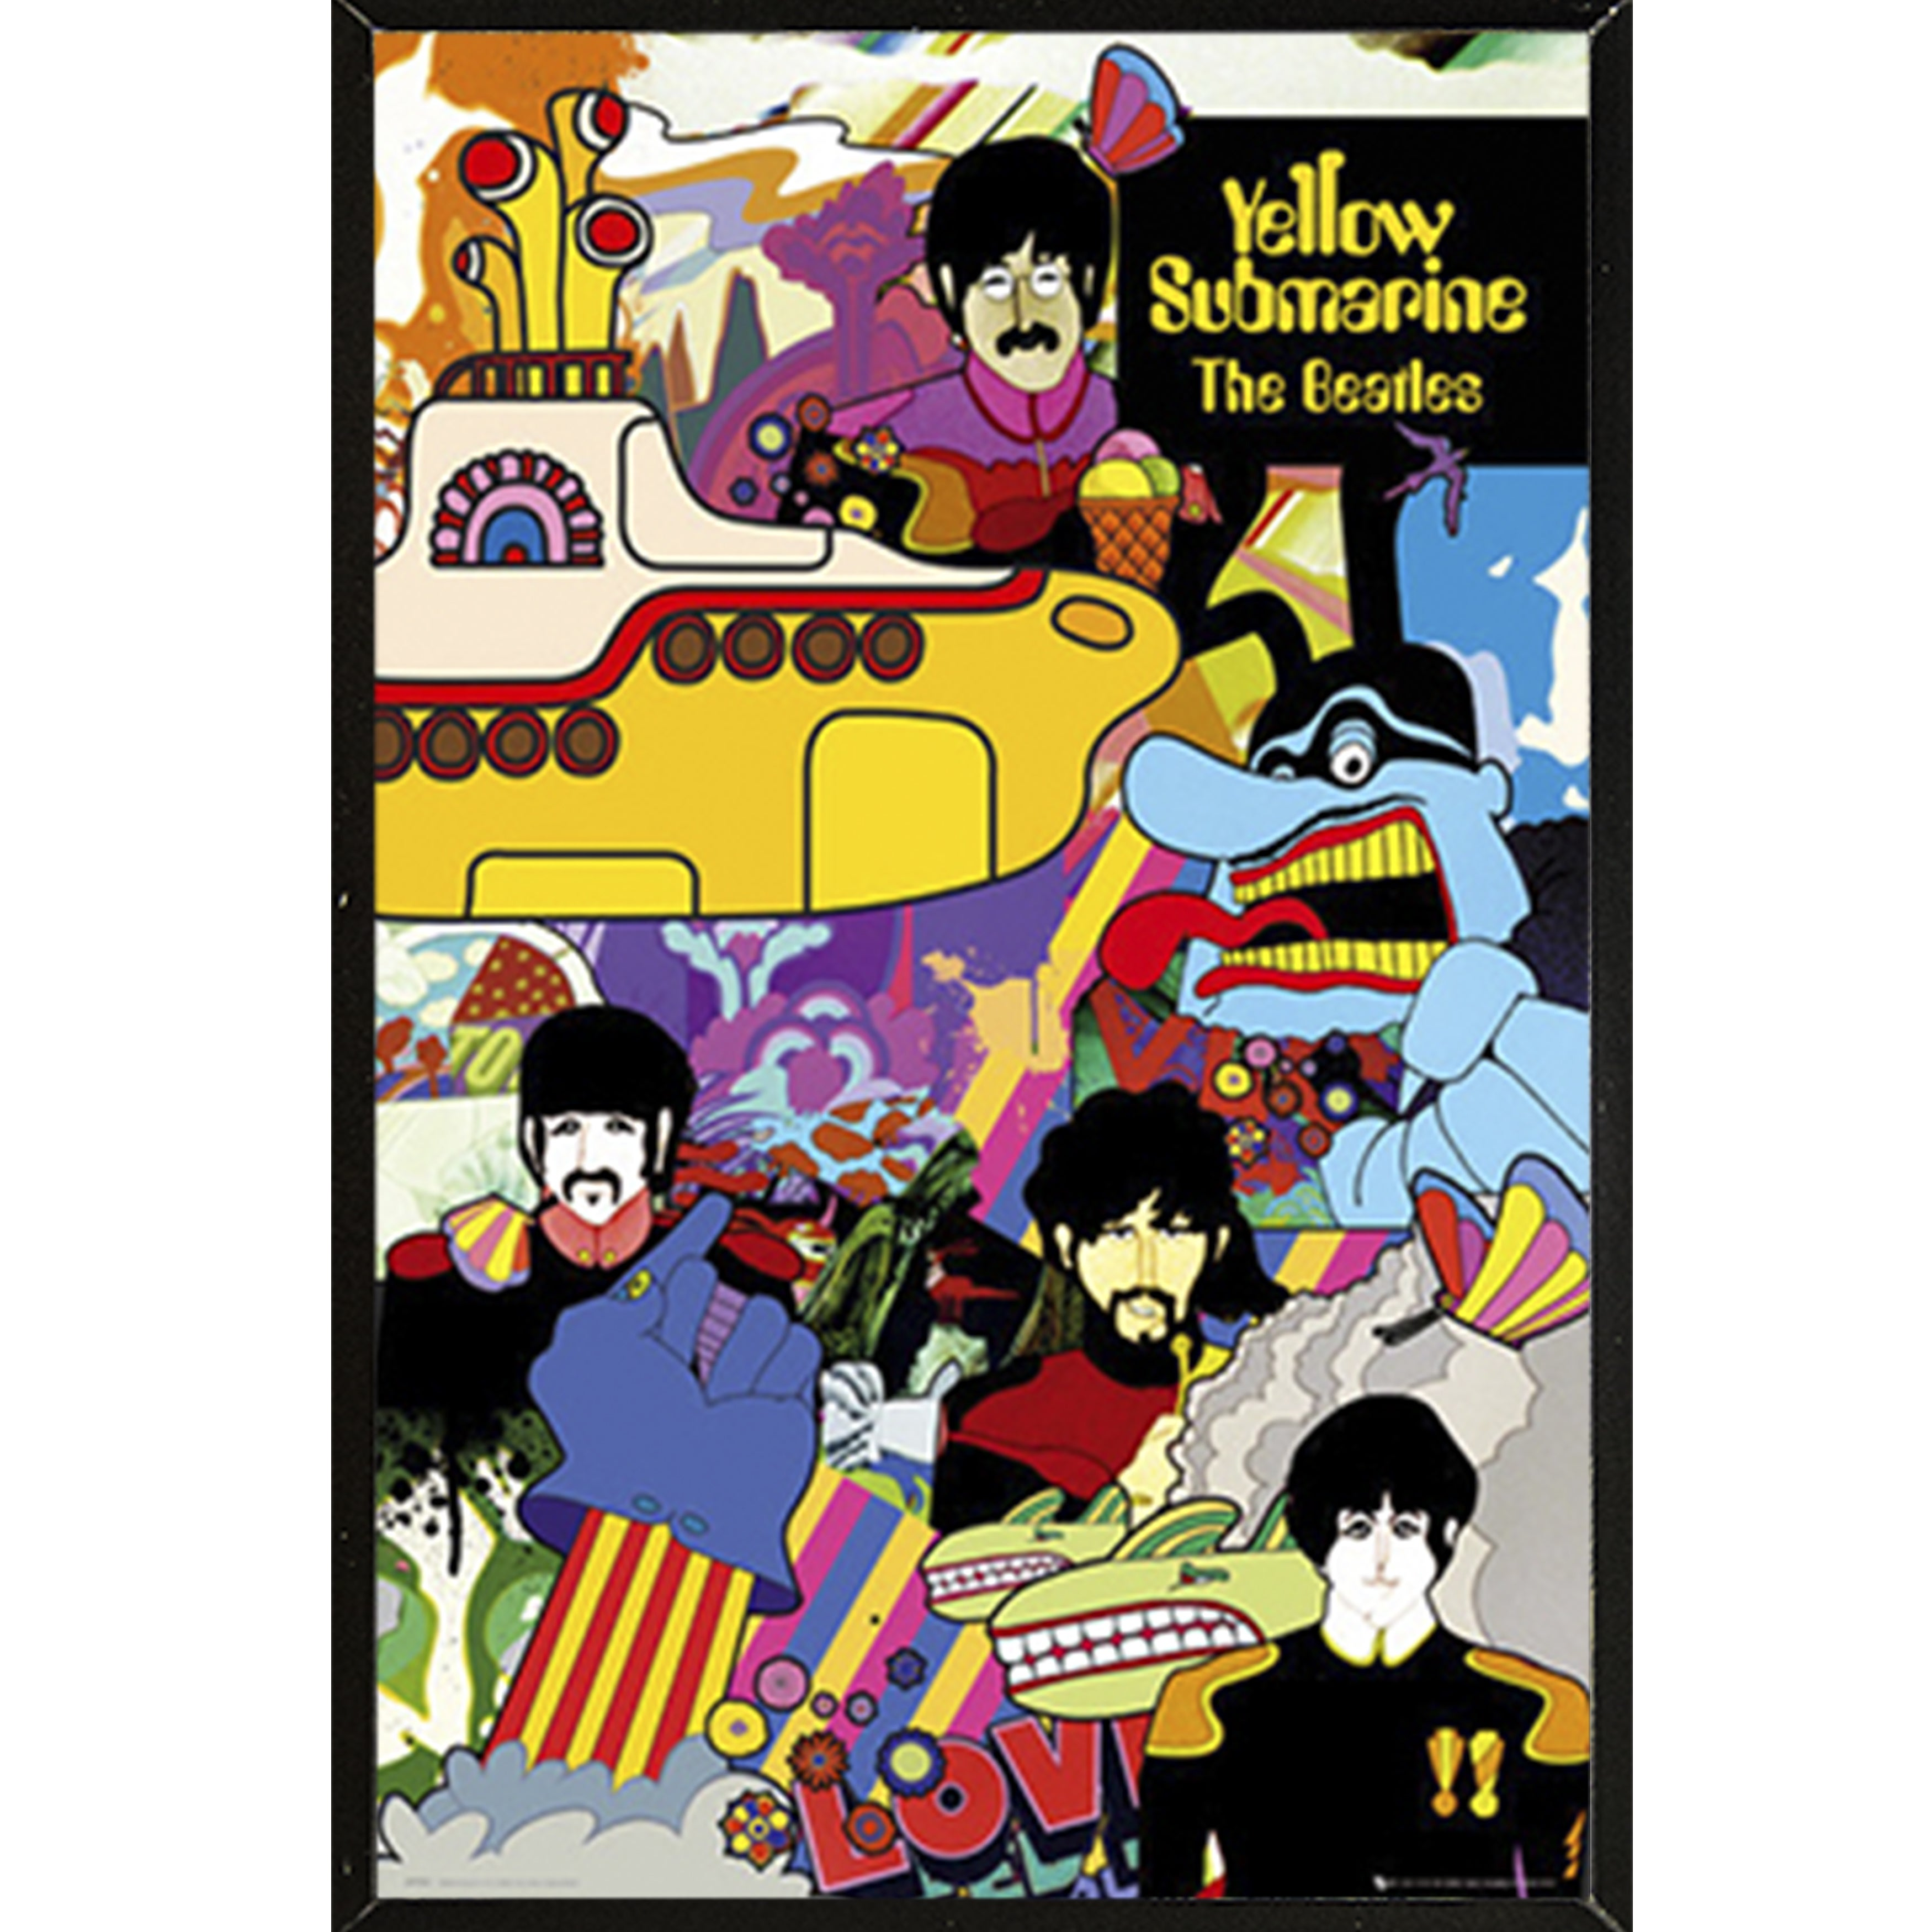 Beatles Yellow Submarine Giant Wall Art New Poster Print Picture